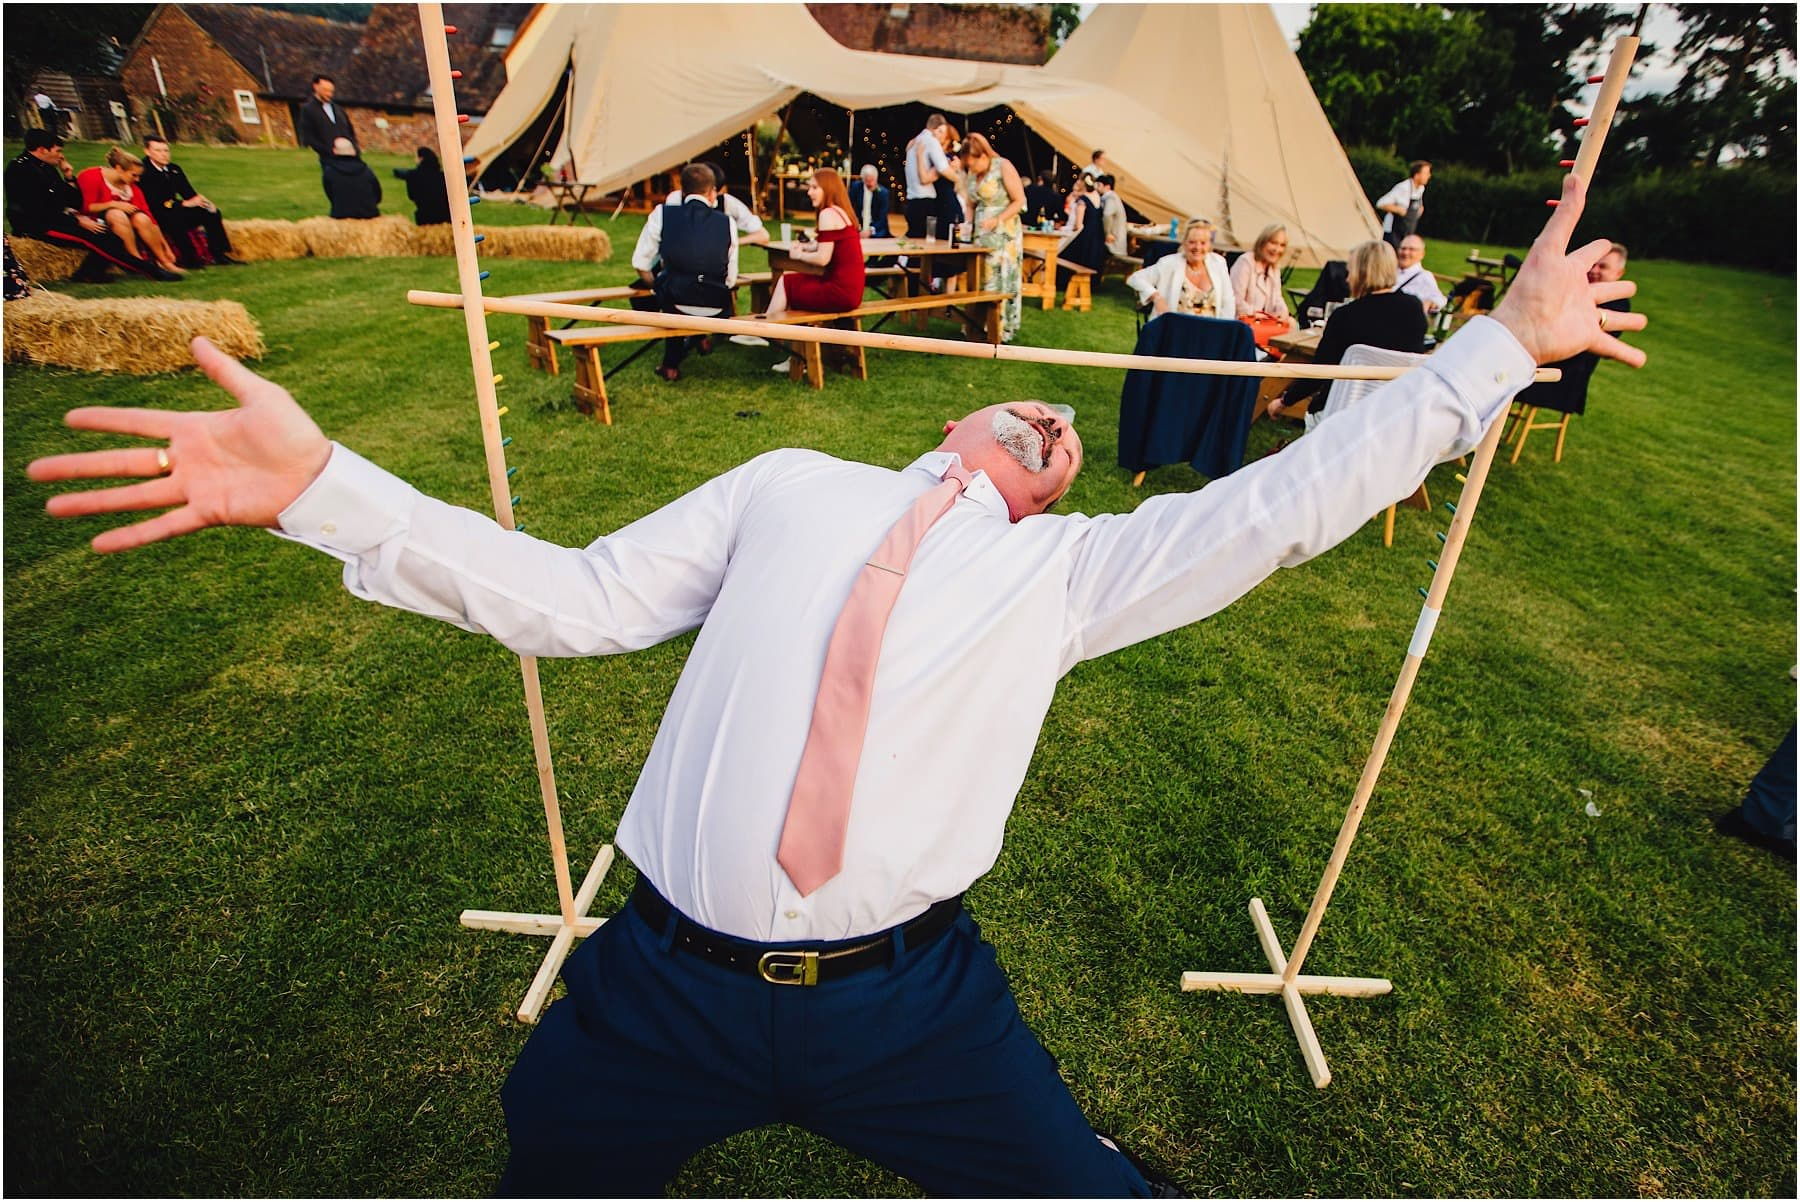 Fun limbo at the Haybarn Wedding Venue